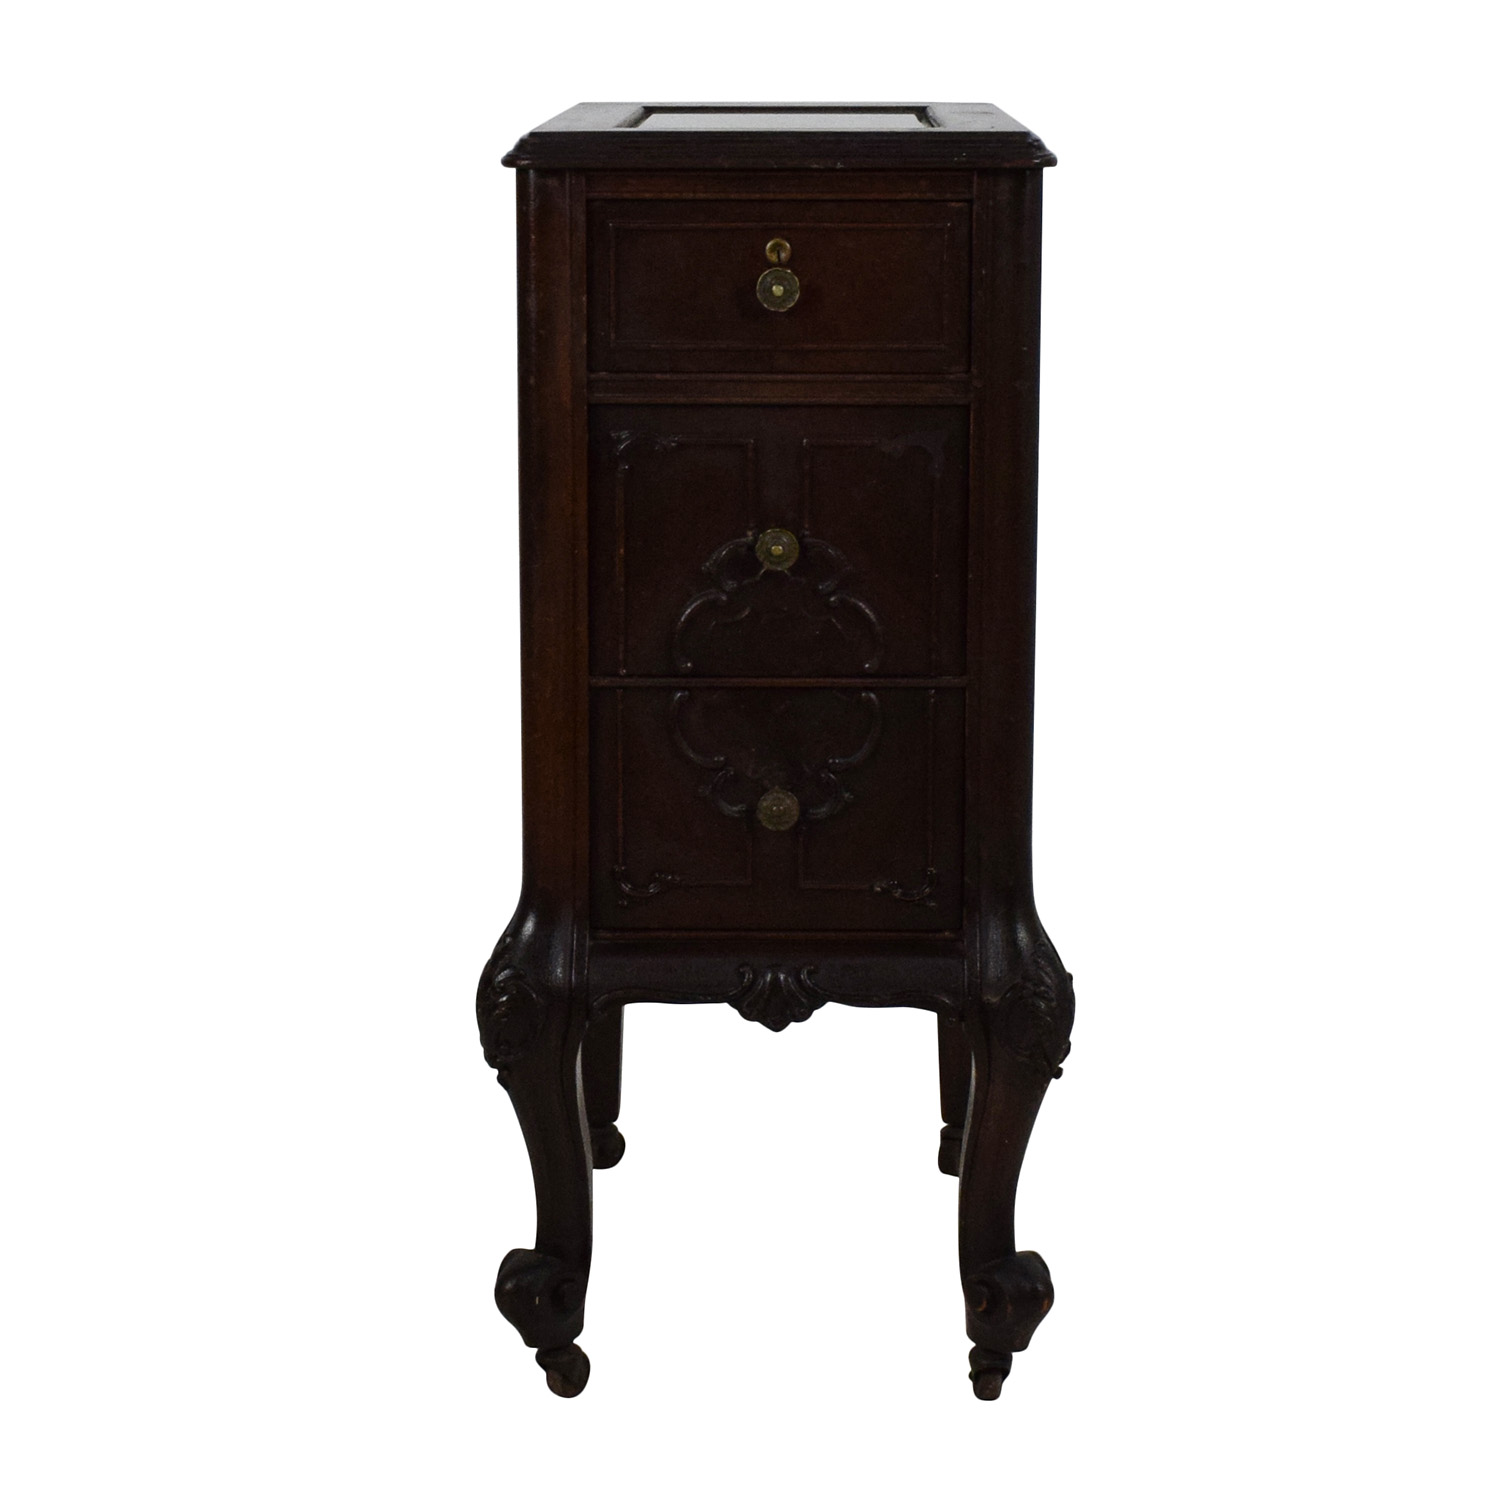 Antique Dark Wooden End Table